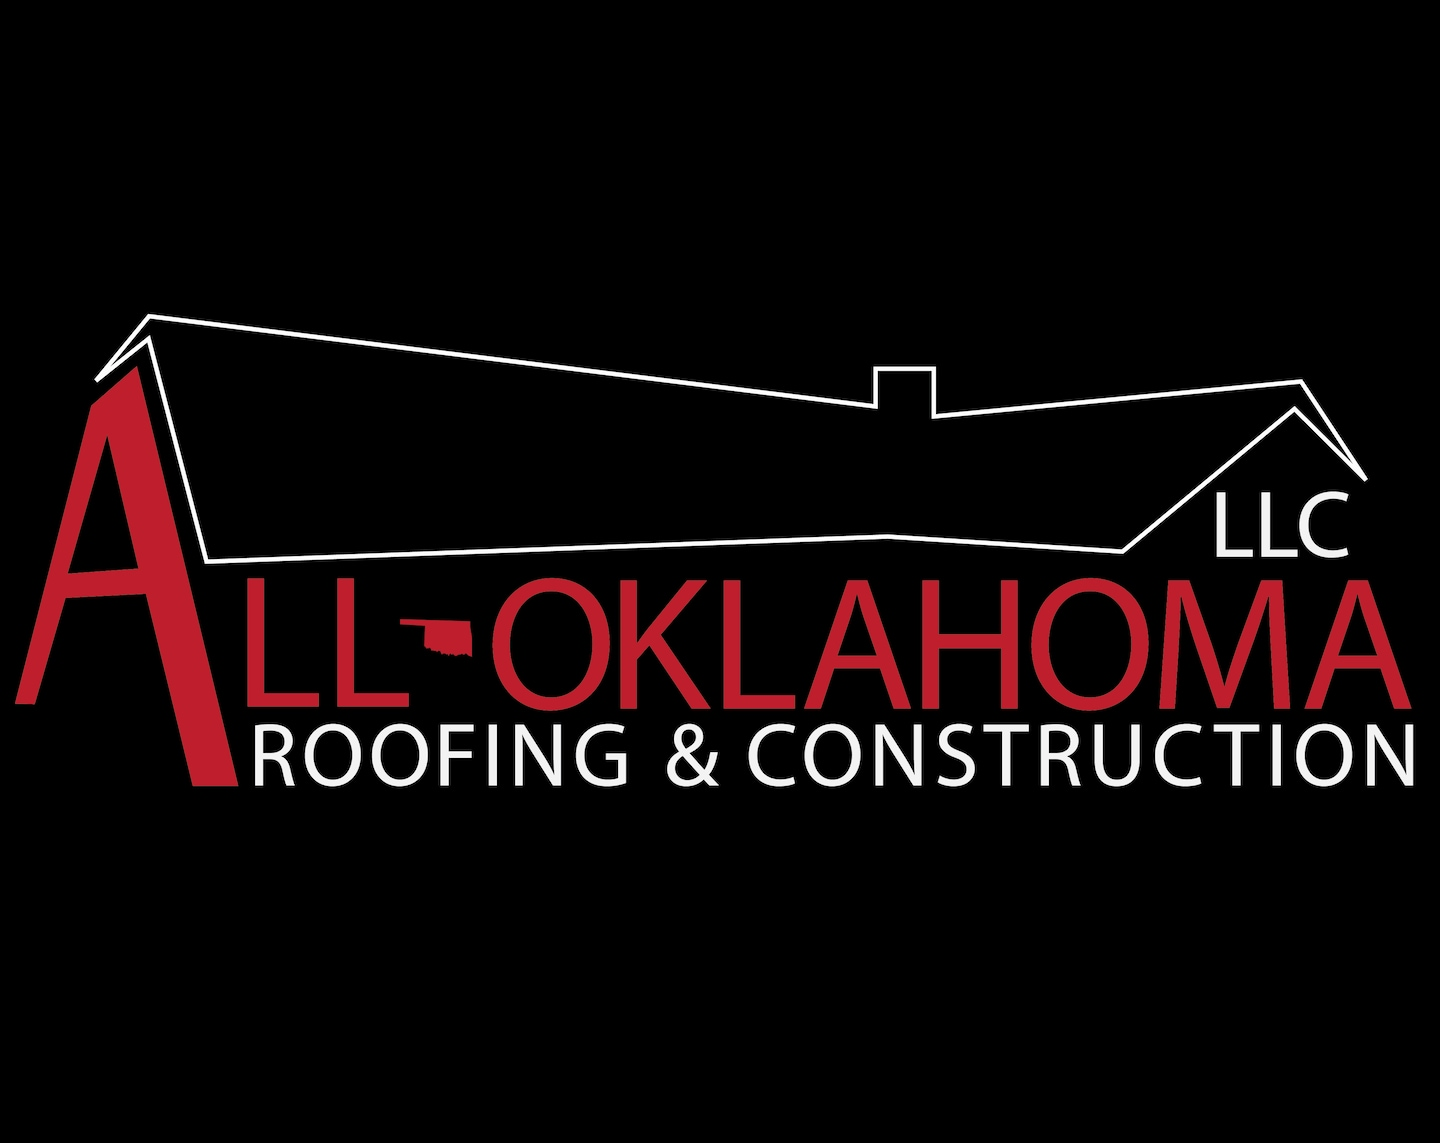 All Oklahoma Roofing & Construction